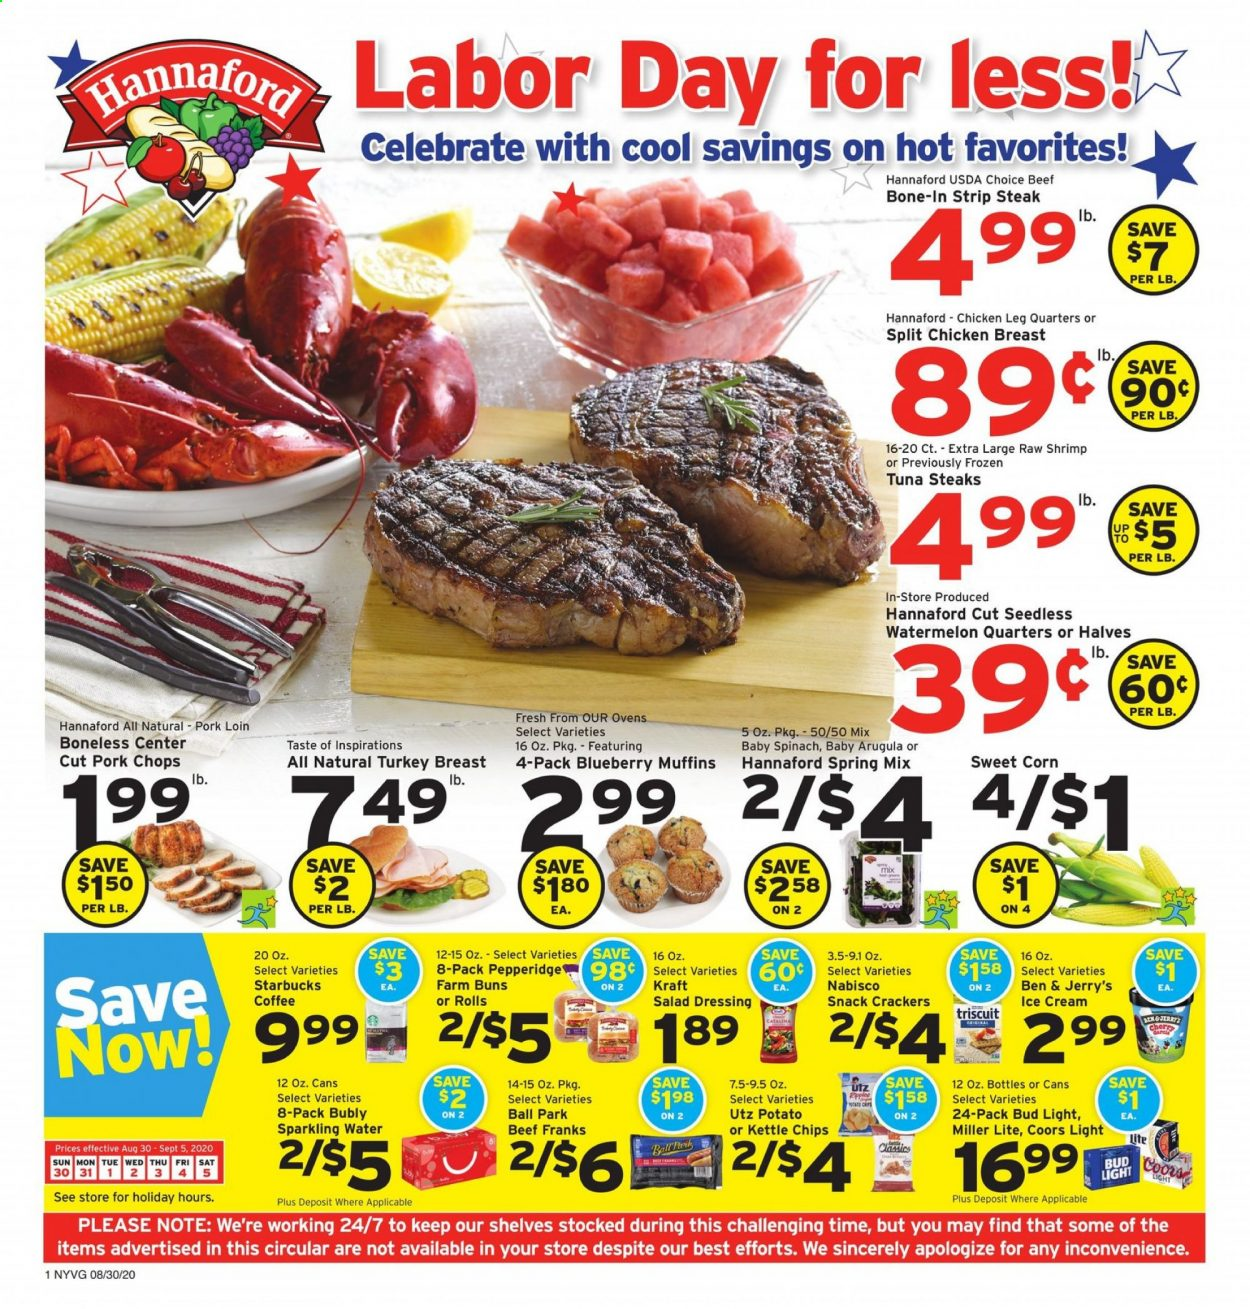 Hannaford Flyer - 08.30.2020 - 09.05.2020 - Sales products - arugula, beef meat, coffee, corn, frozen, Miller Lite, muffins, salad dressing, shelf, shelves, spinach, starbucks, tuna, turkey, turkey breast, watermelon, ice cream, pork chops, pork loin, pork meat, chicken, chicken breast, chips, steak, dressing, snack, sparkling water, Bud Light, salad, ball, Coors, cool, shrimps, kettle, spring. Page 1.